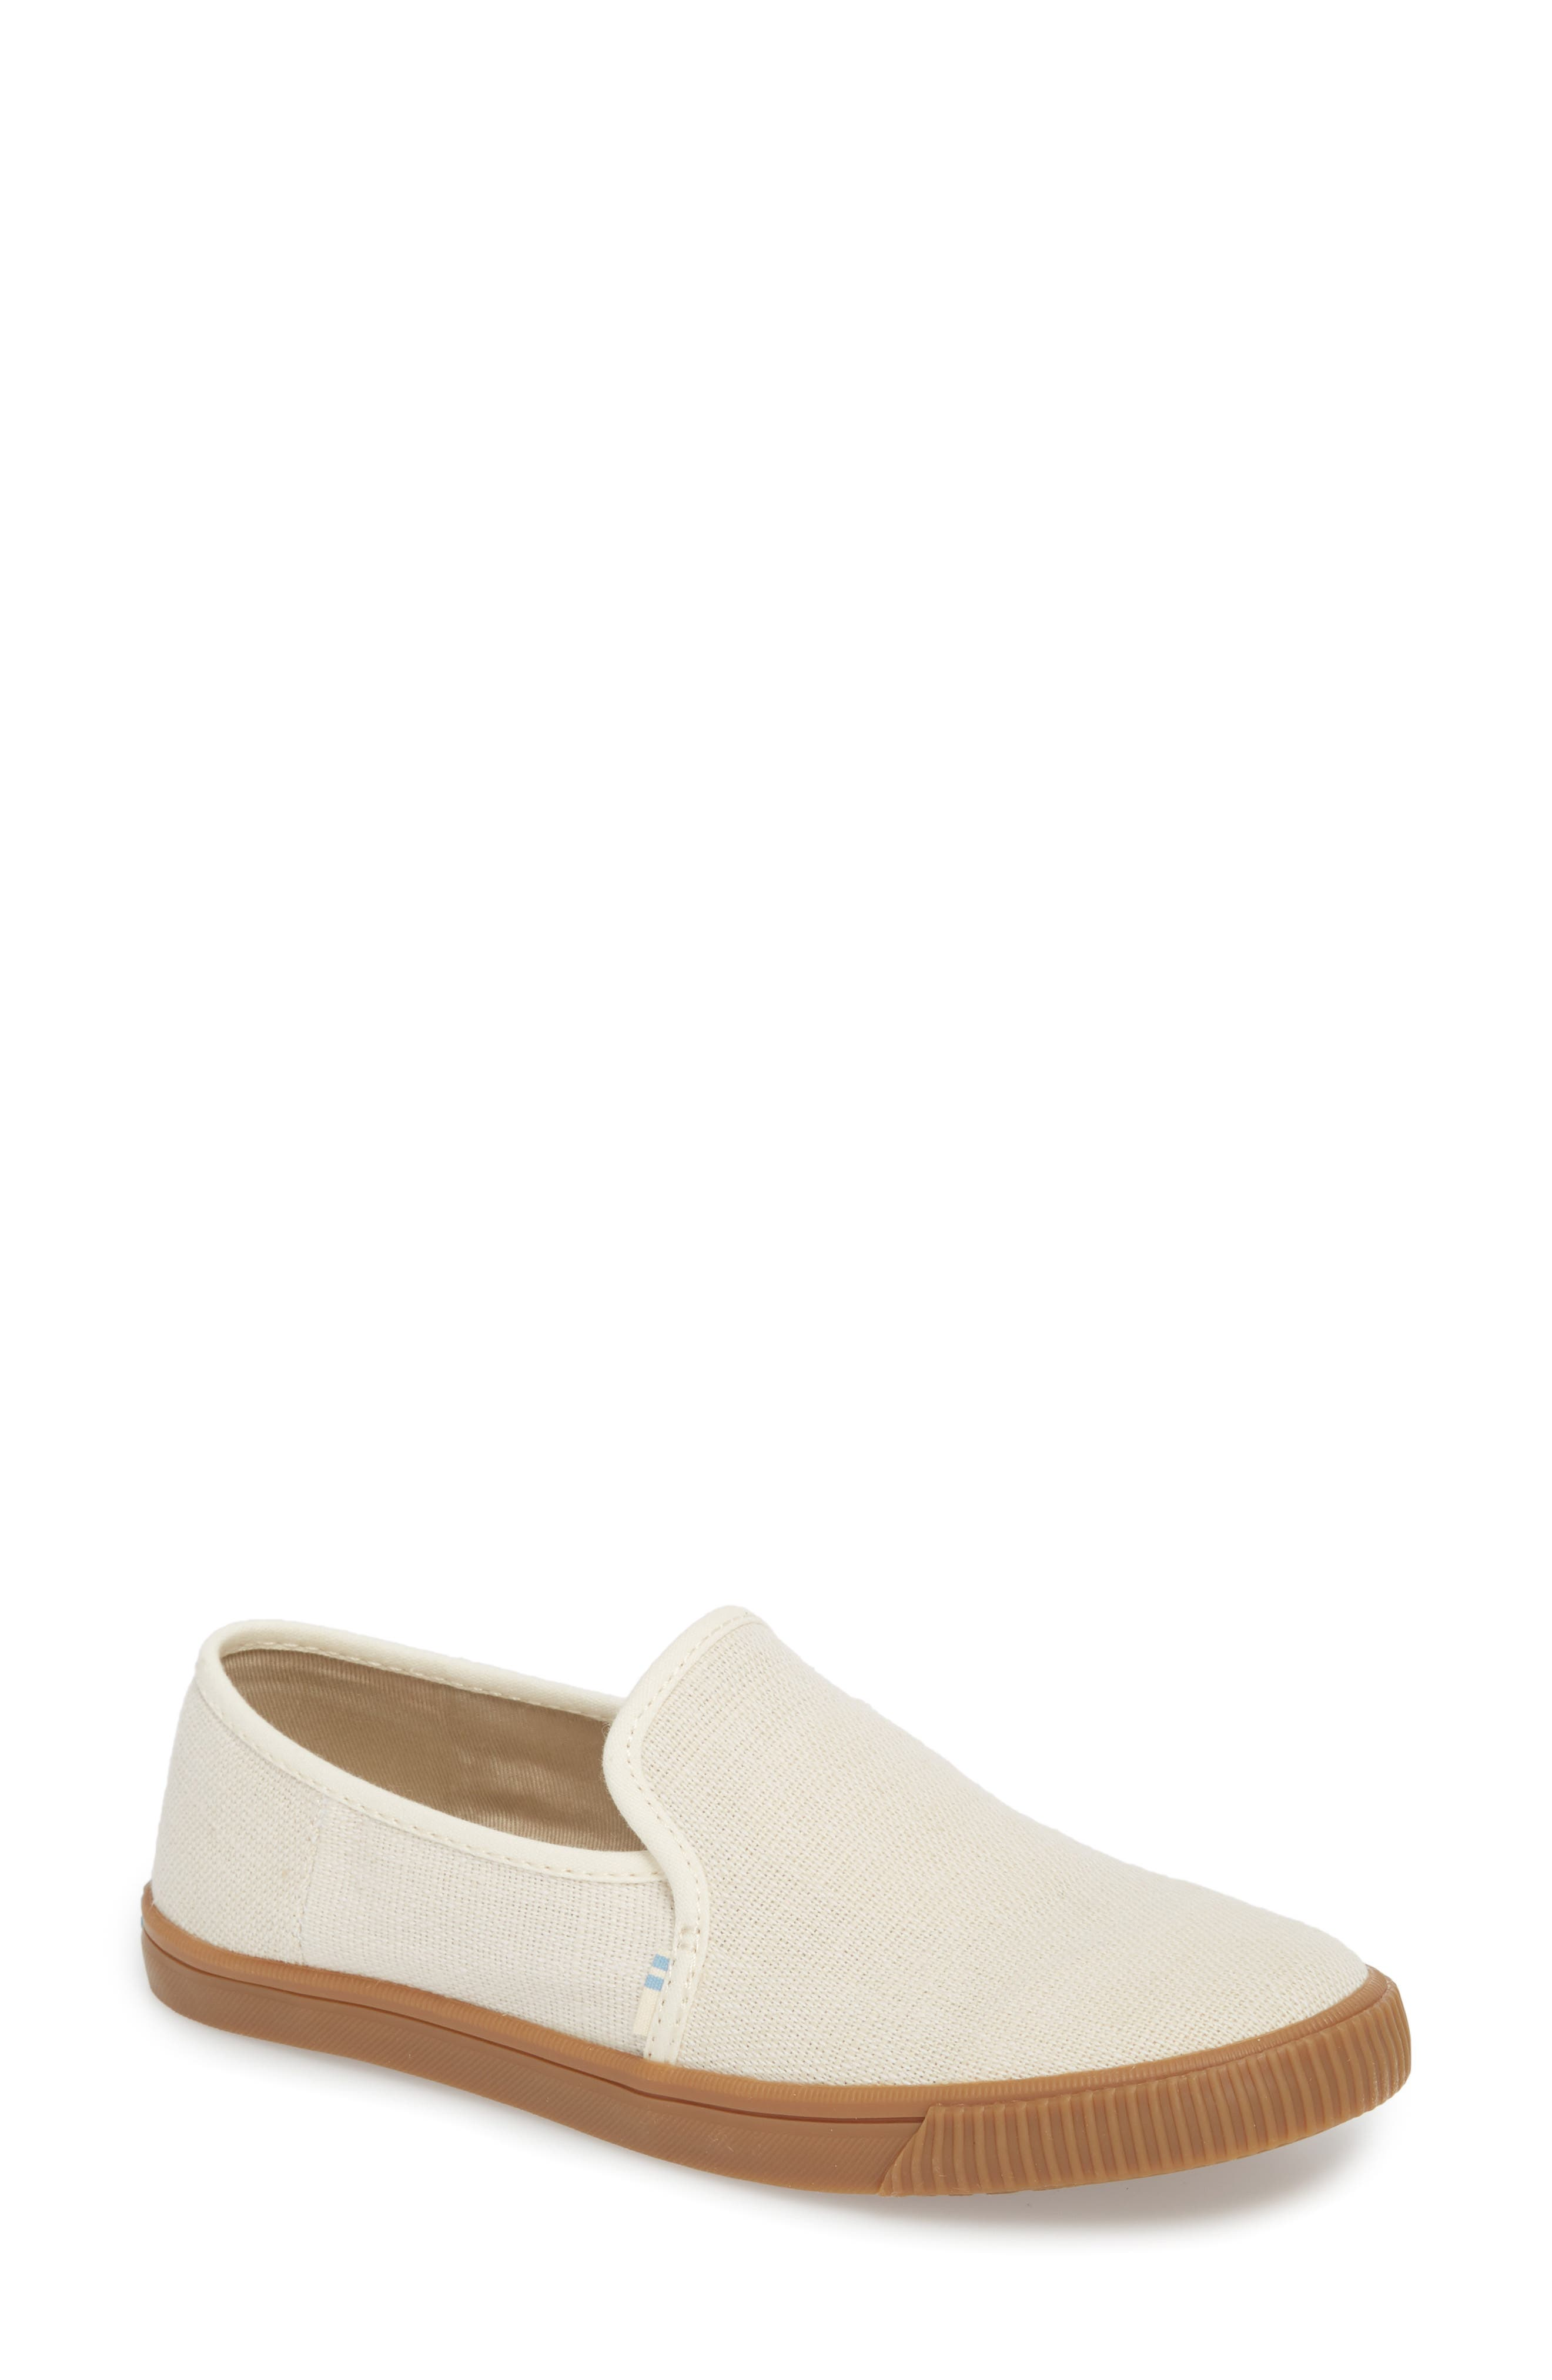 Clemente Slip-On,                             Main thumbnail 1, color,                             Birch Heritage Canvas